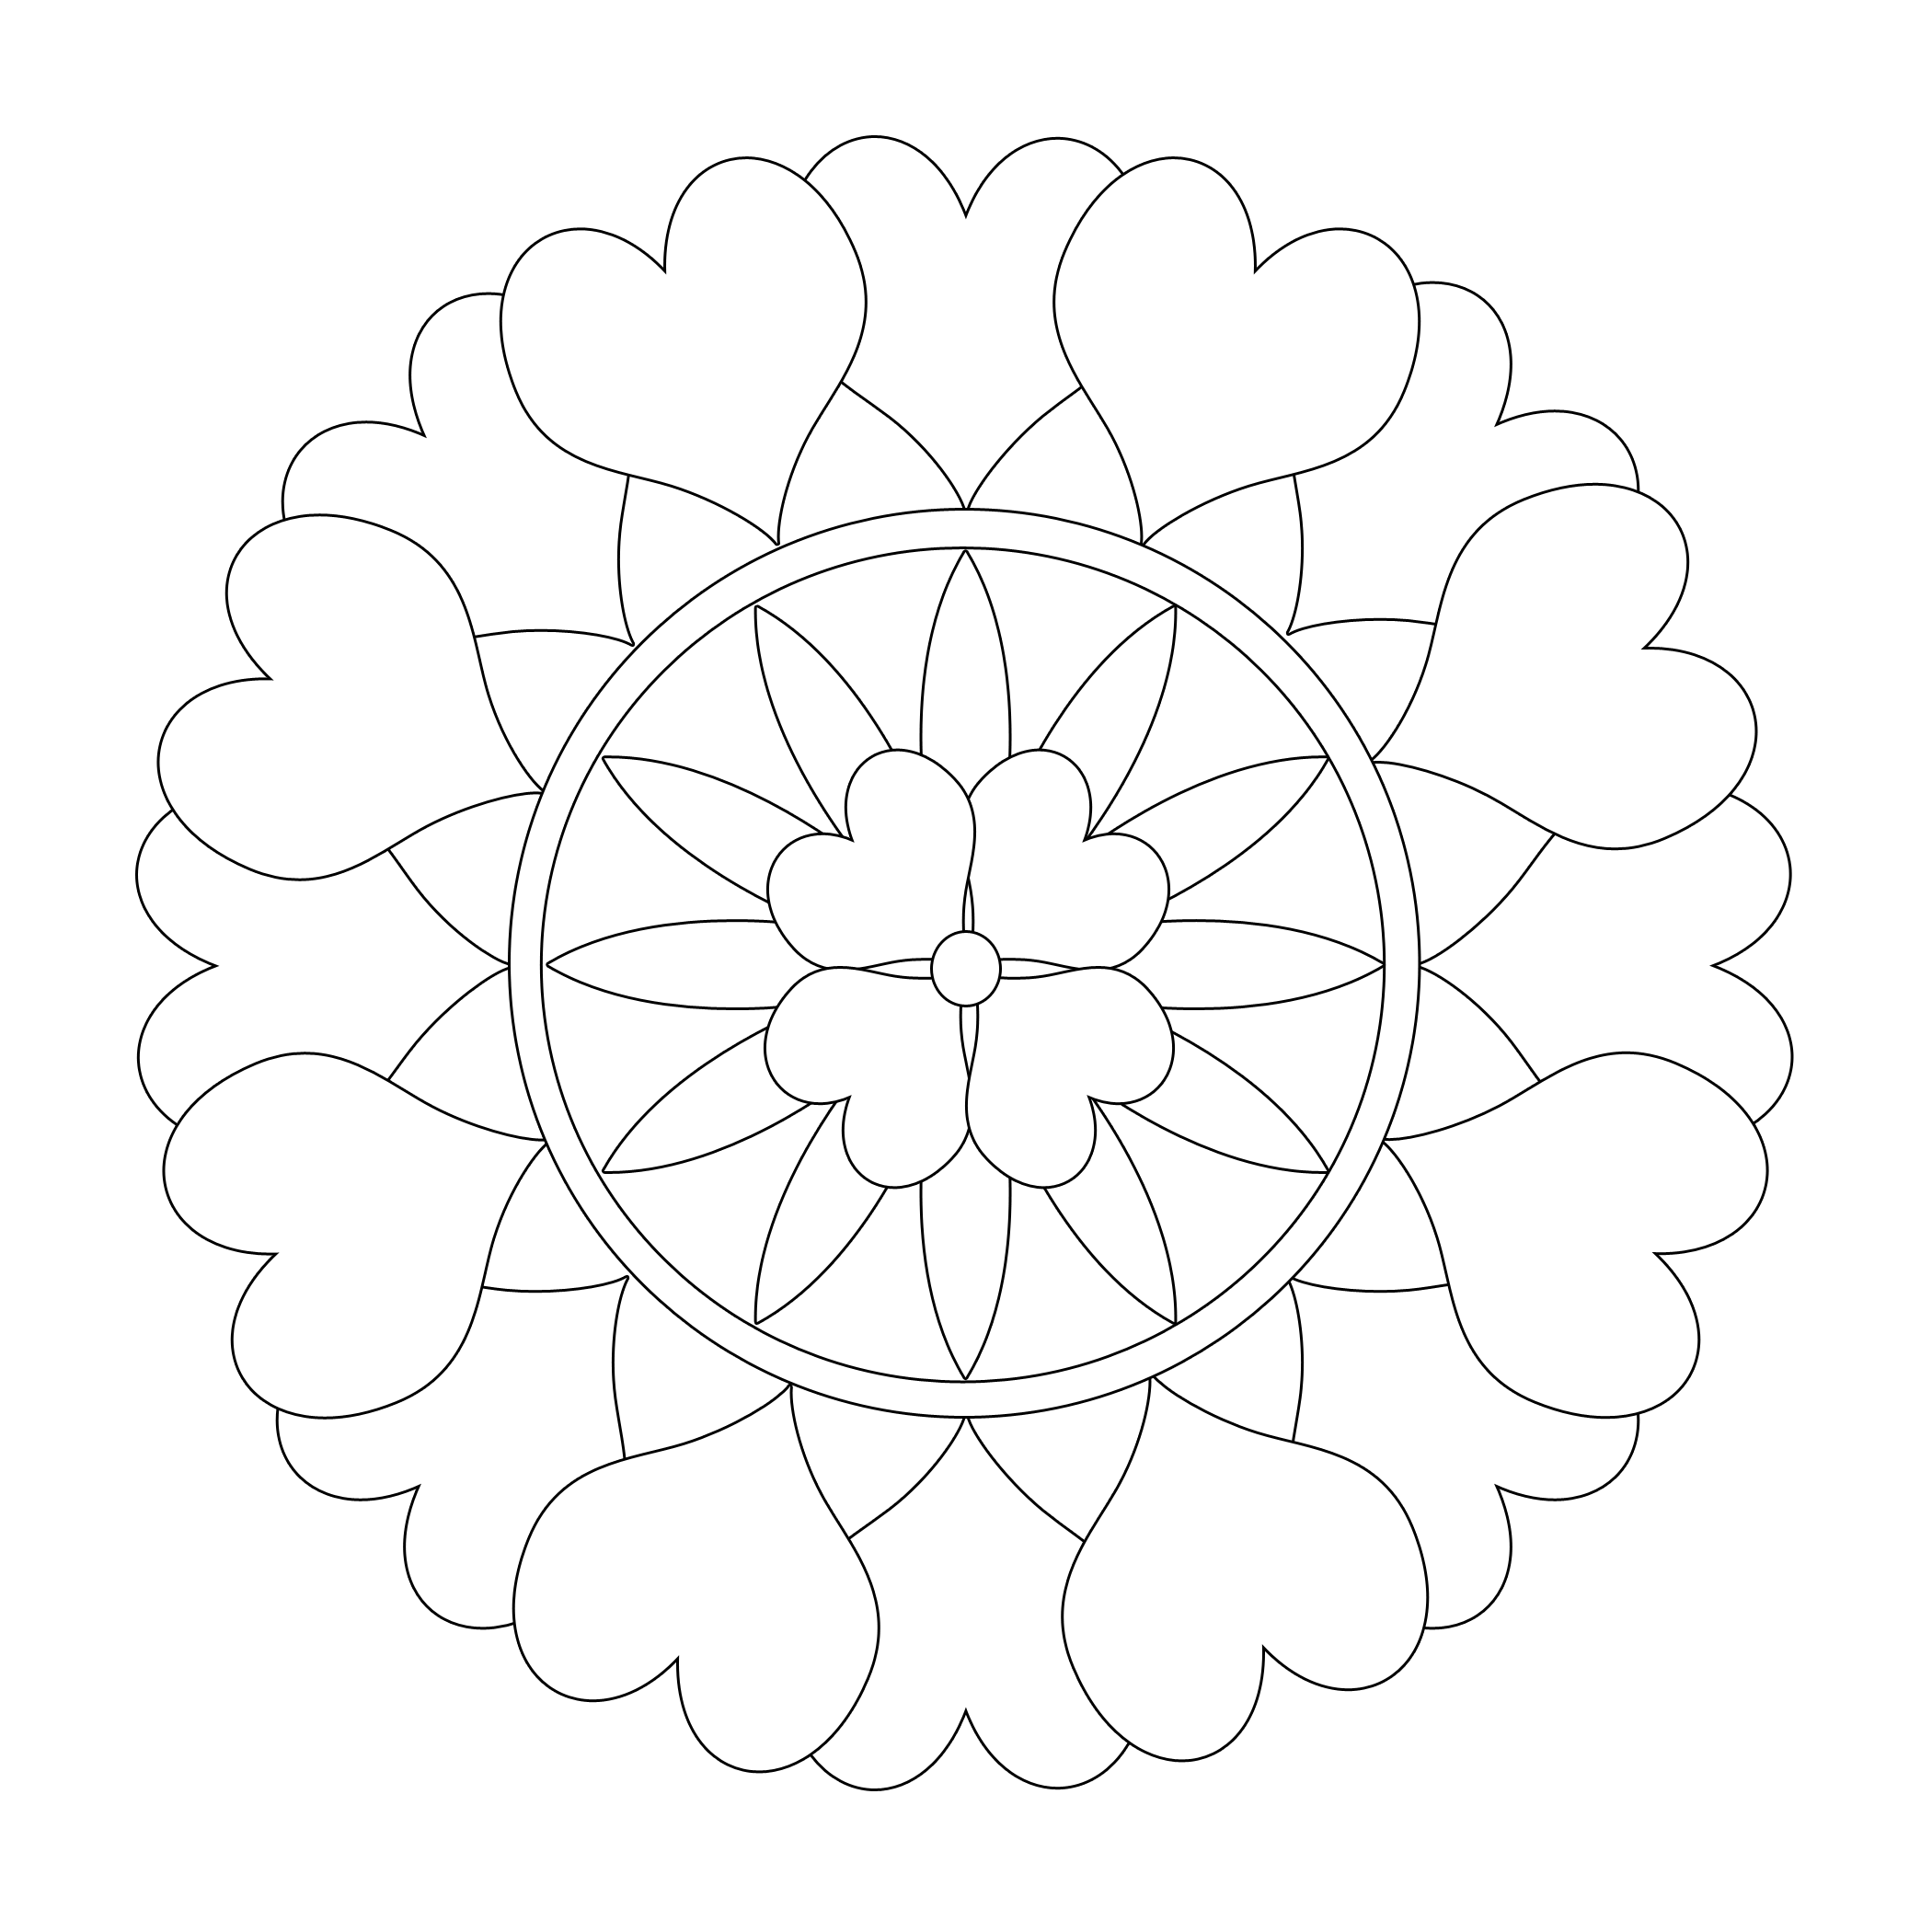 free printable mandalas for adults free printable mandala coloring pages for adults best adults mandalas for free printable